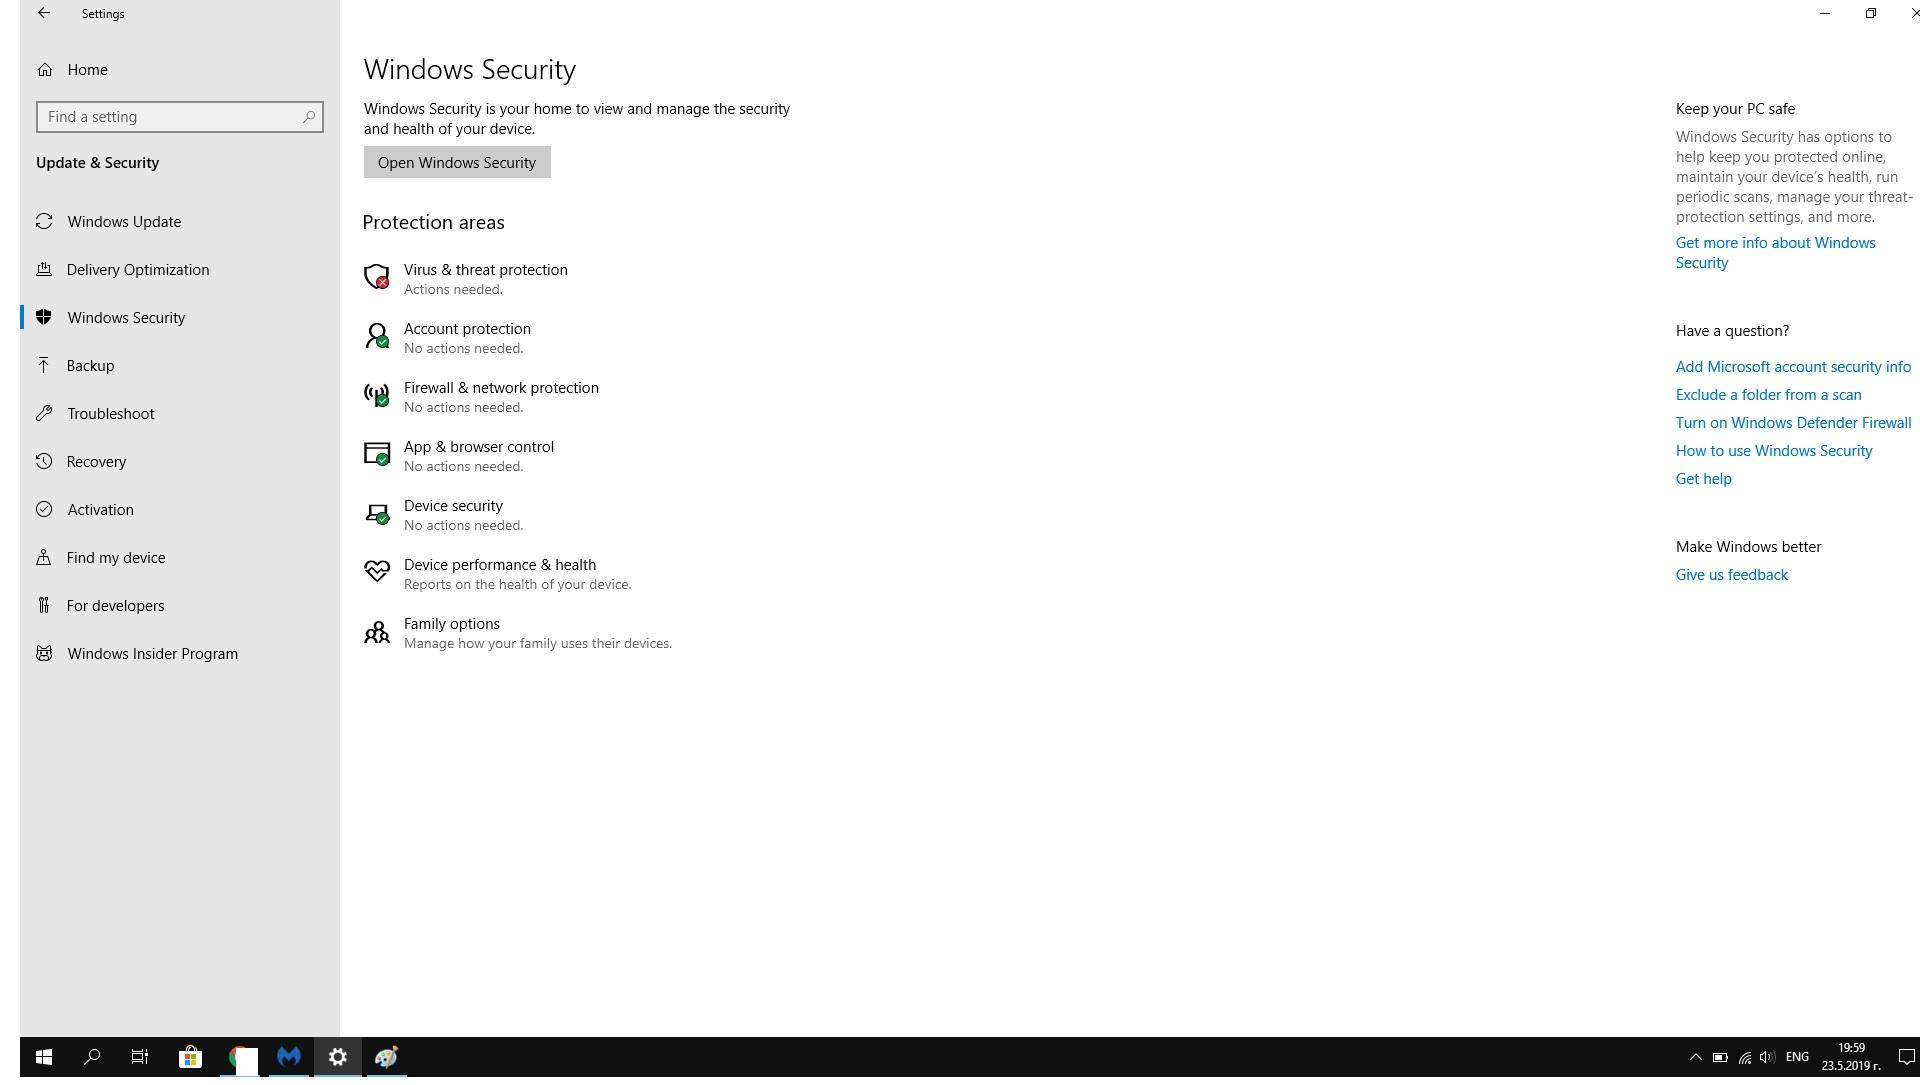 I think my Laptop is infected - Resolved Malware Removal